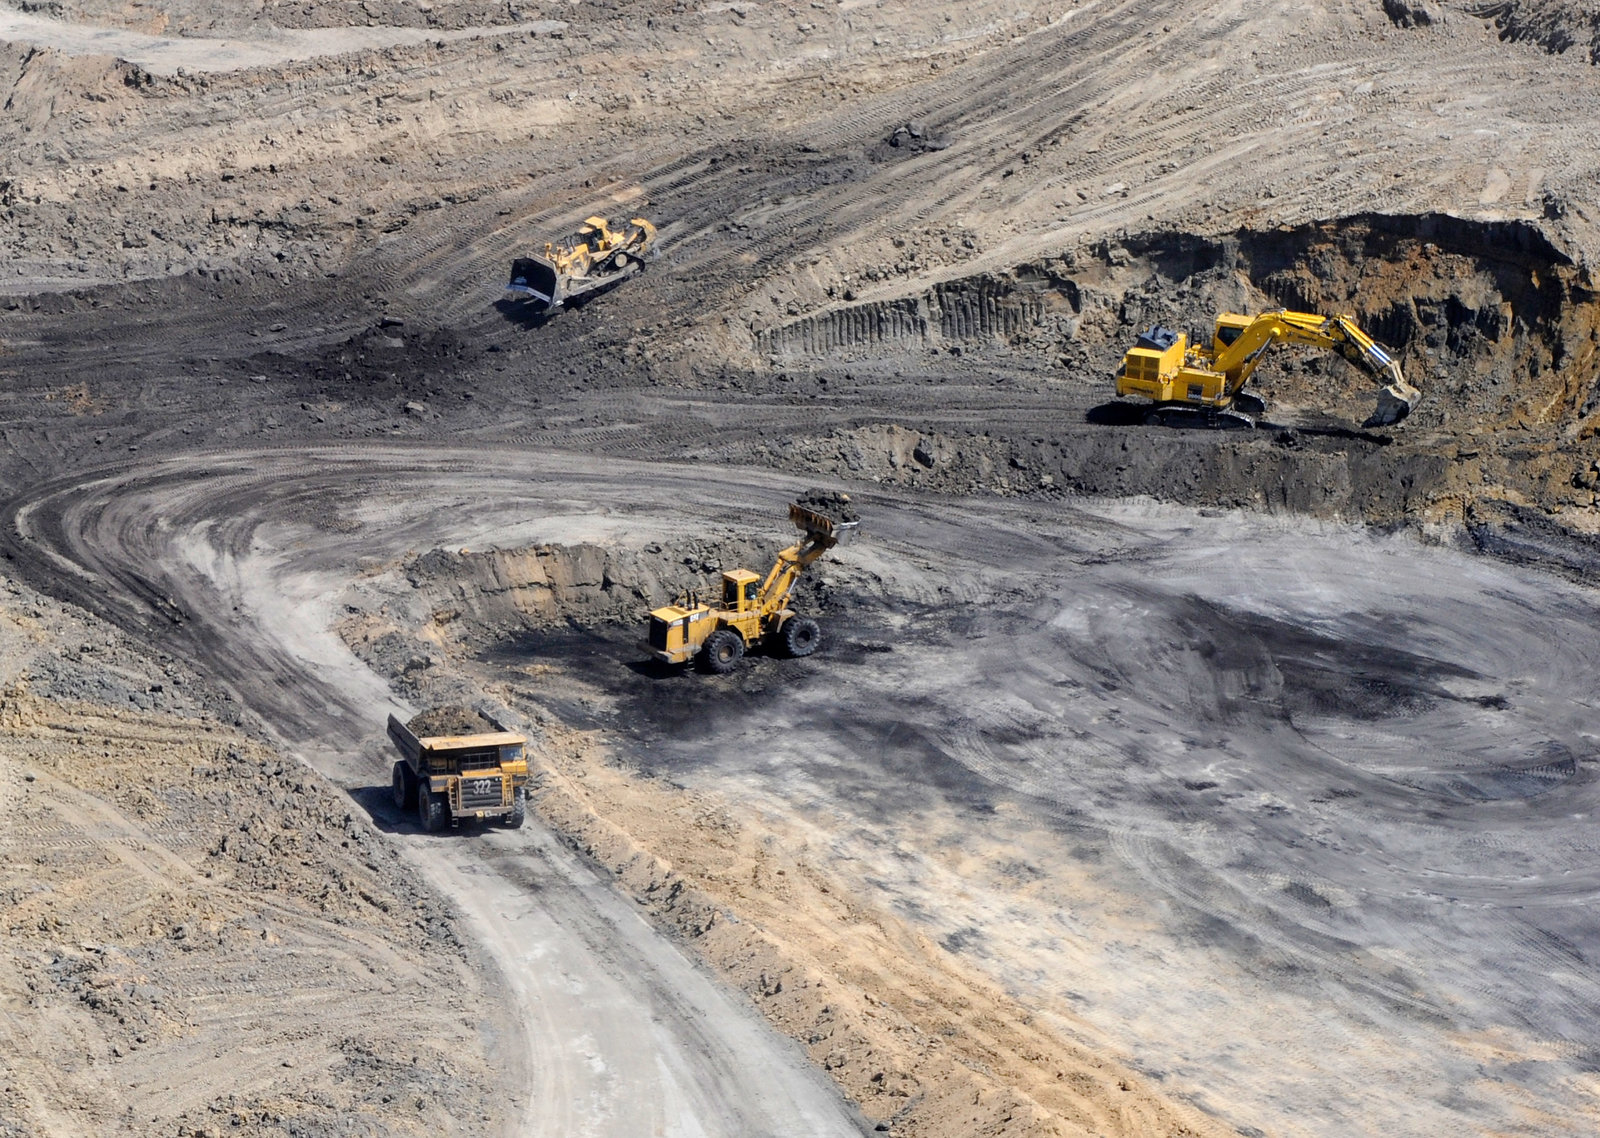 Public lands coal mining leases could be undervalued